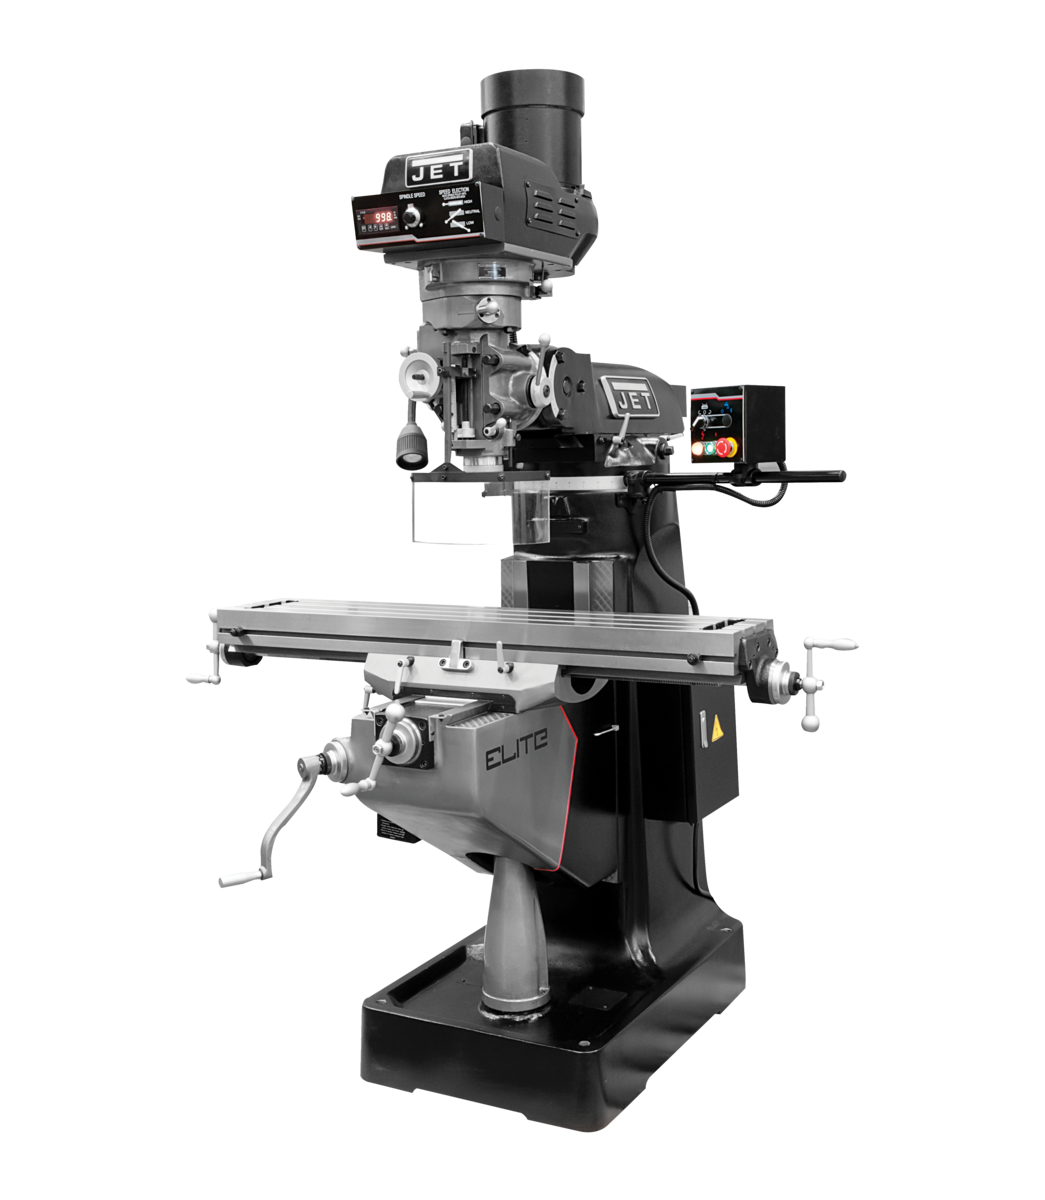 EVS-949 Mill with 3-Axis Newall DP700 (Knee) DRO and X, Y, Z-Axis JET Powerfeeds